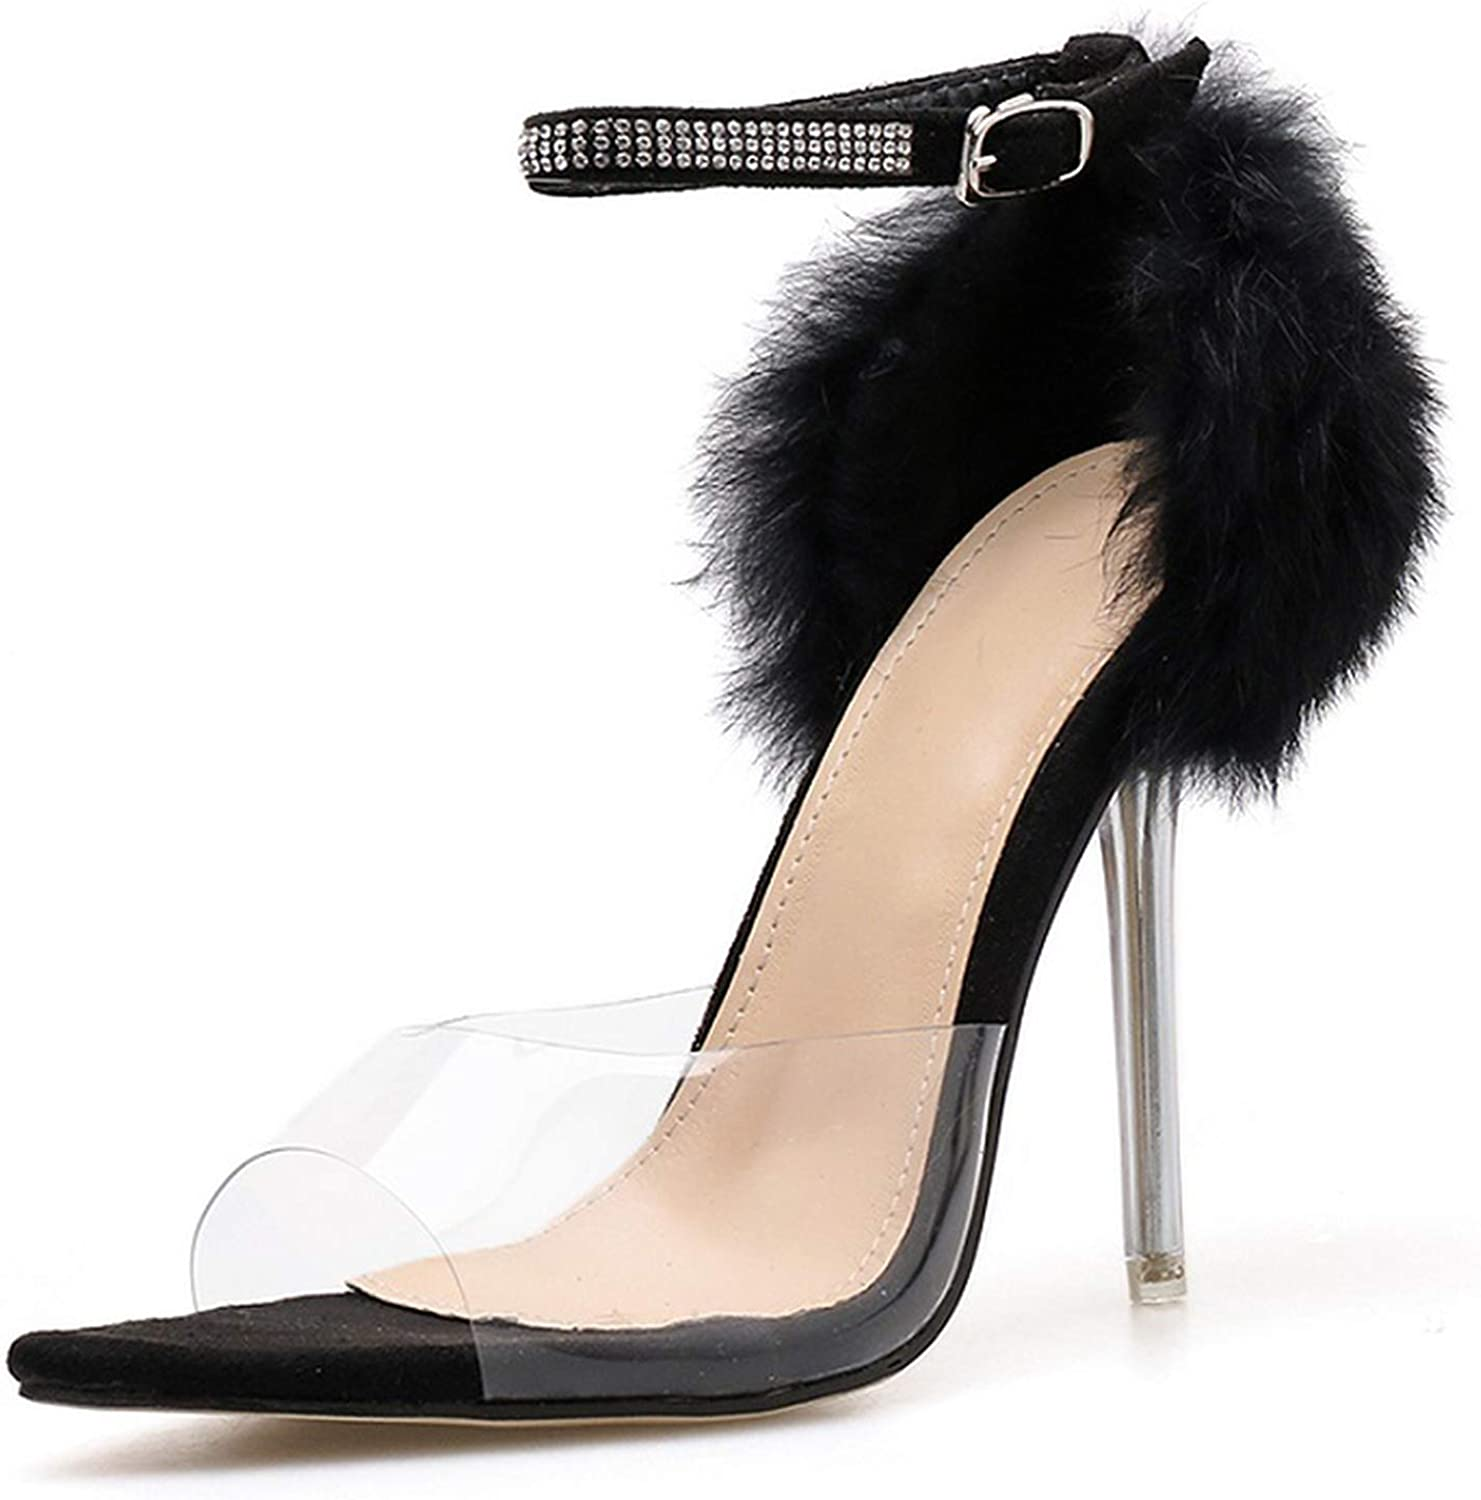 SP-pink Transparent High Heel Sandals Rhinestone Buckle with Pointed Open Toe Mane Decorated Stiletto Sandals